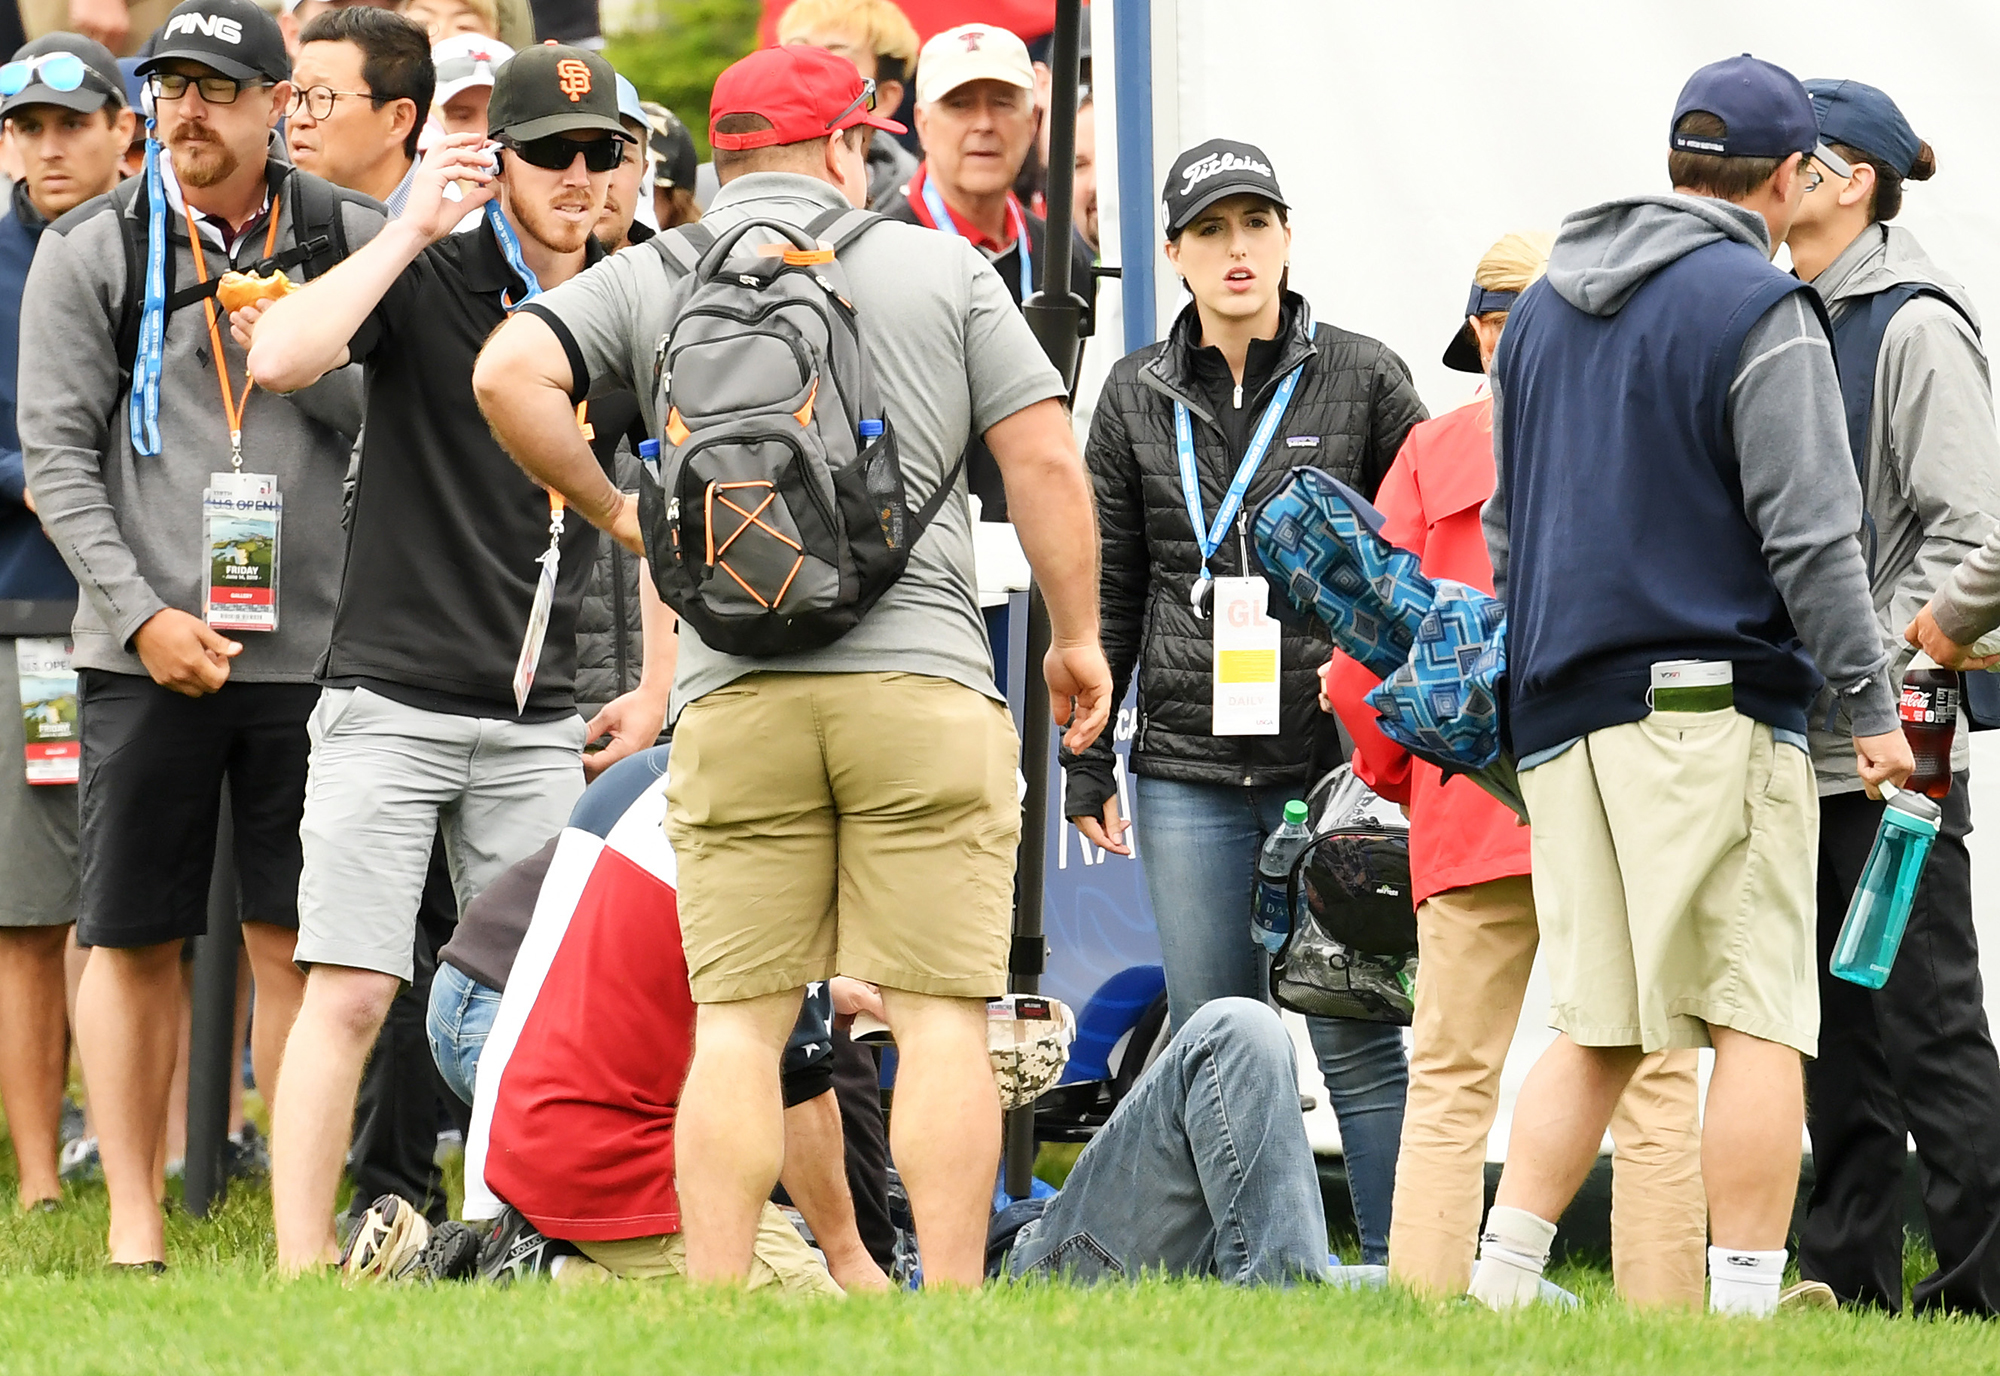 Medical attention is administered after an incident involving a golf cart on the 16th hole during the second round of the 2019 U.S. Open